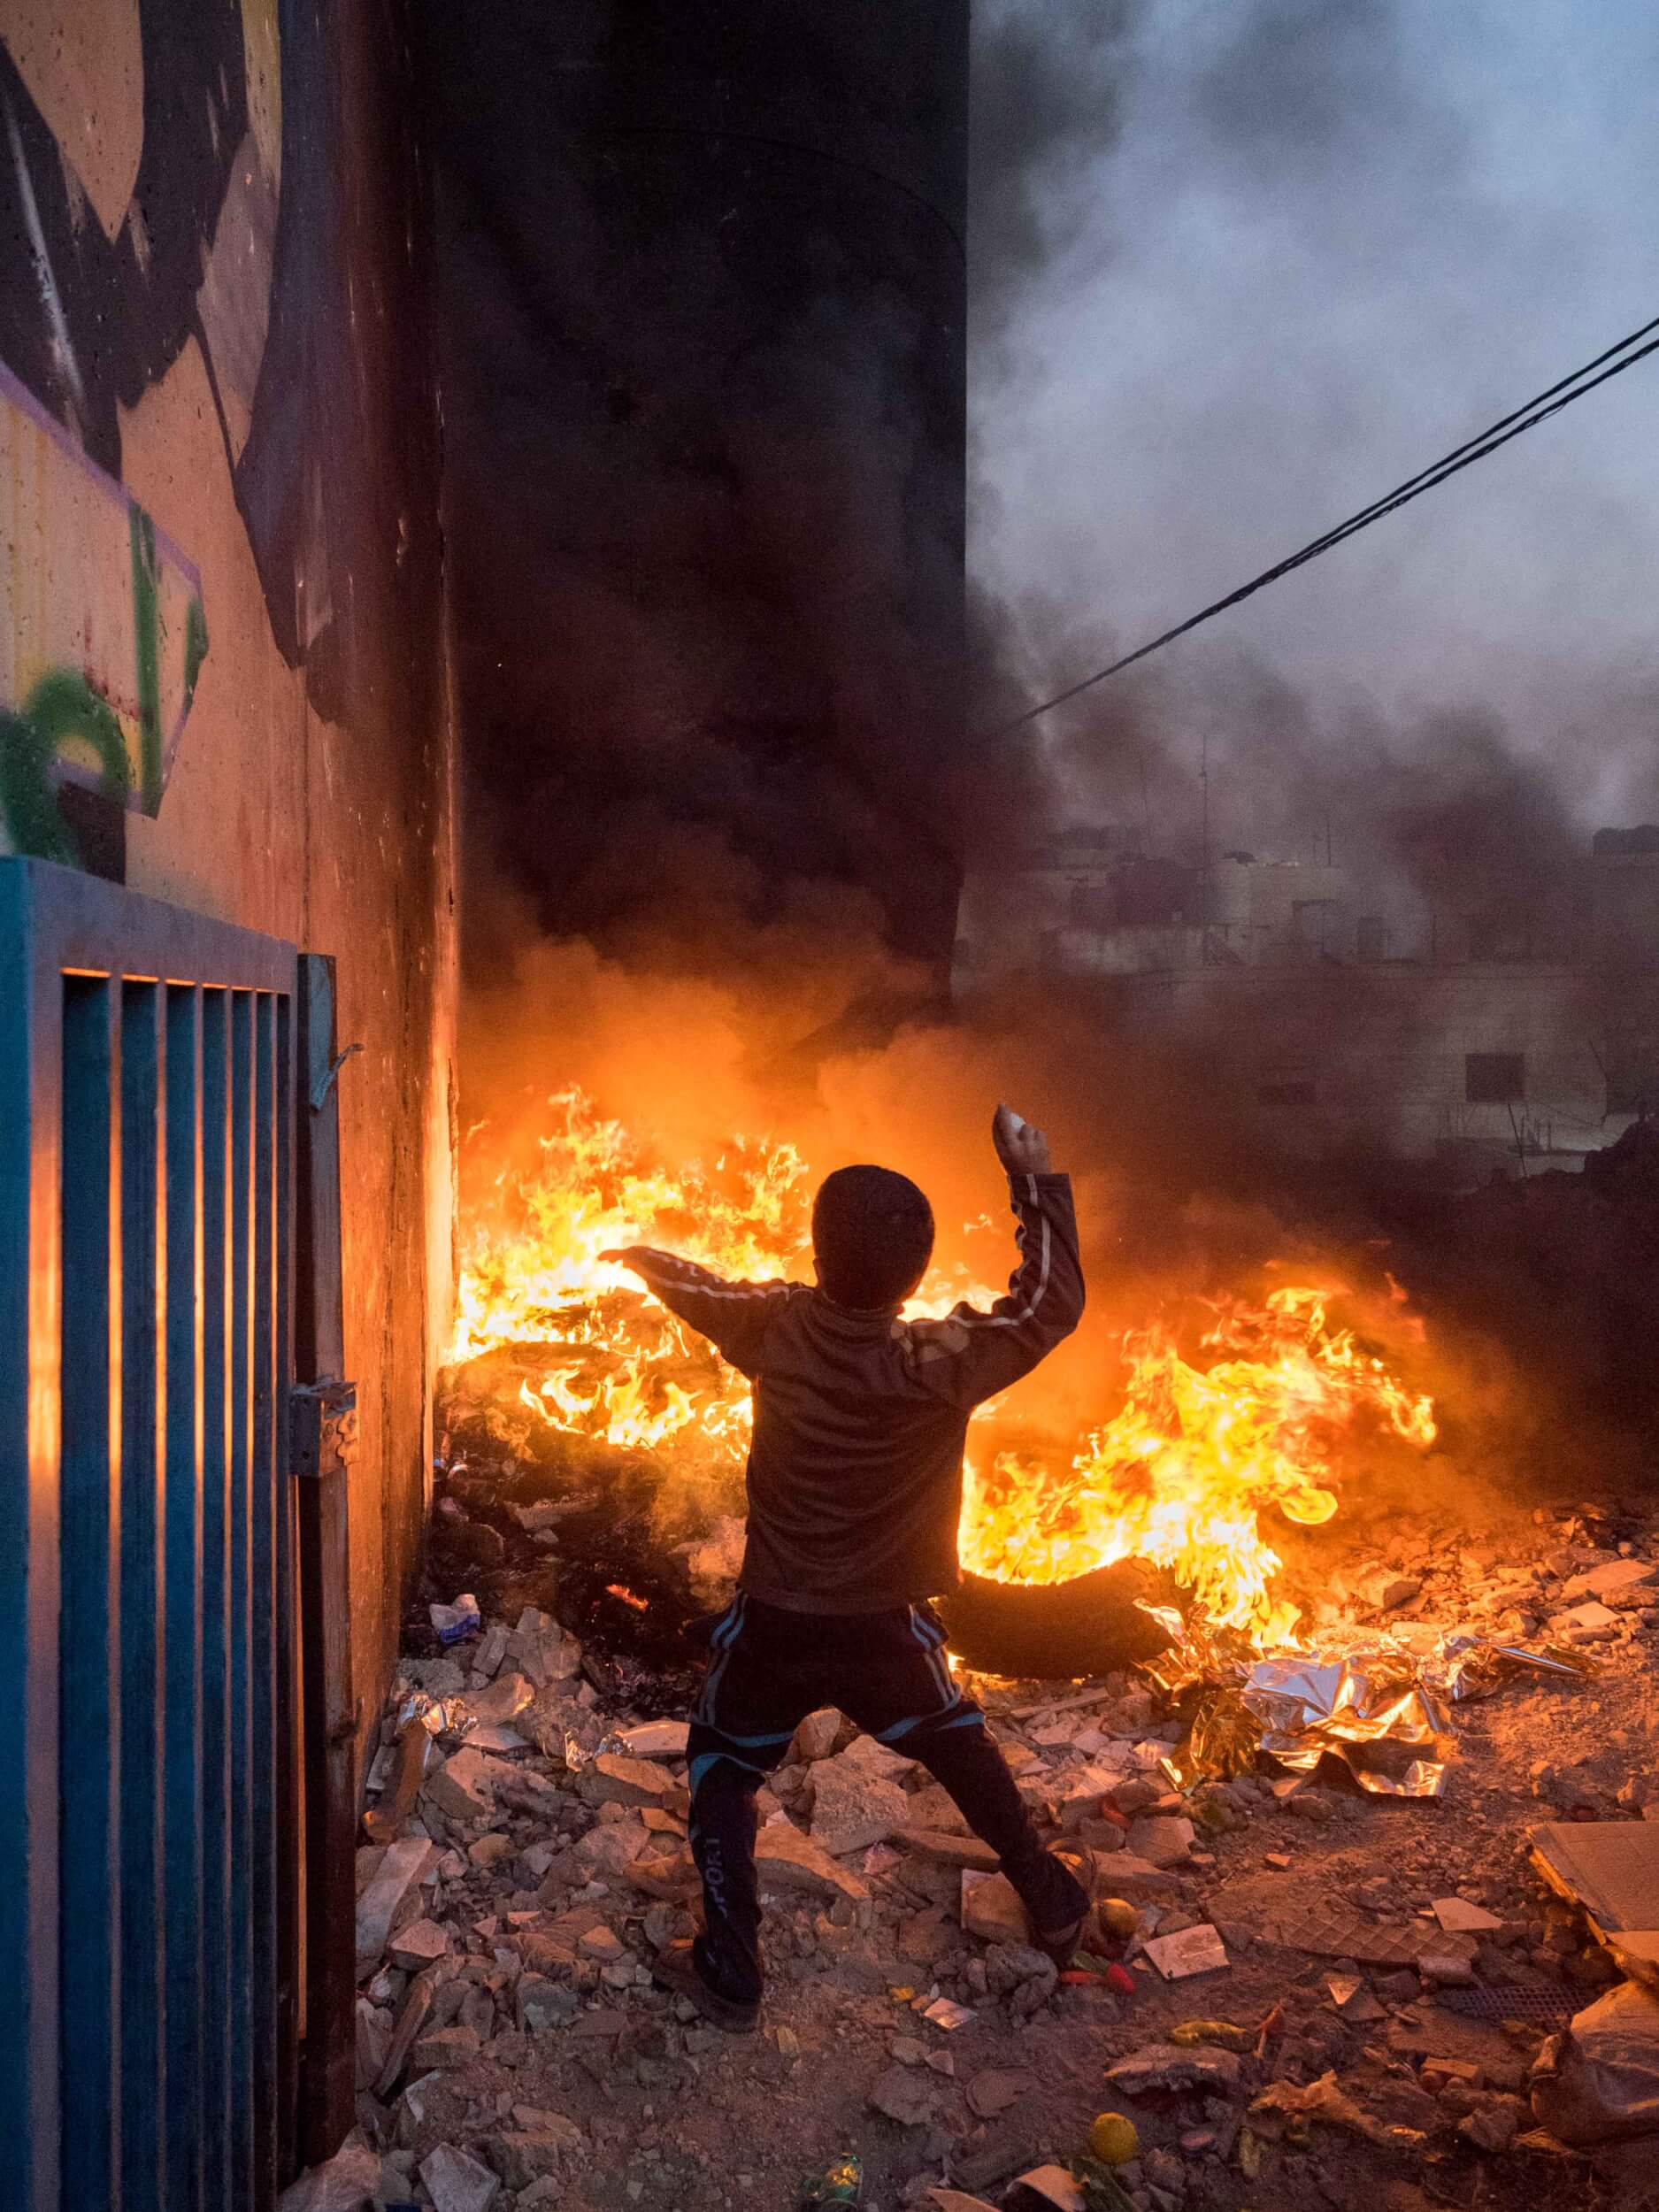 A boy throws a rock at the burning tower. (Photo: Dan Cohen)